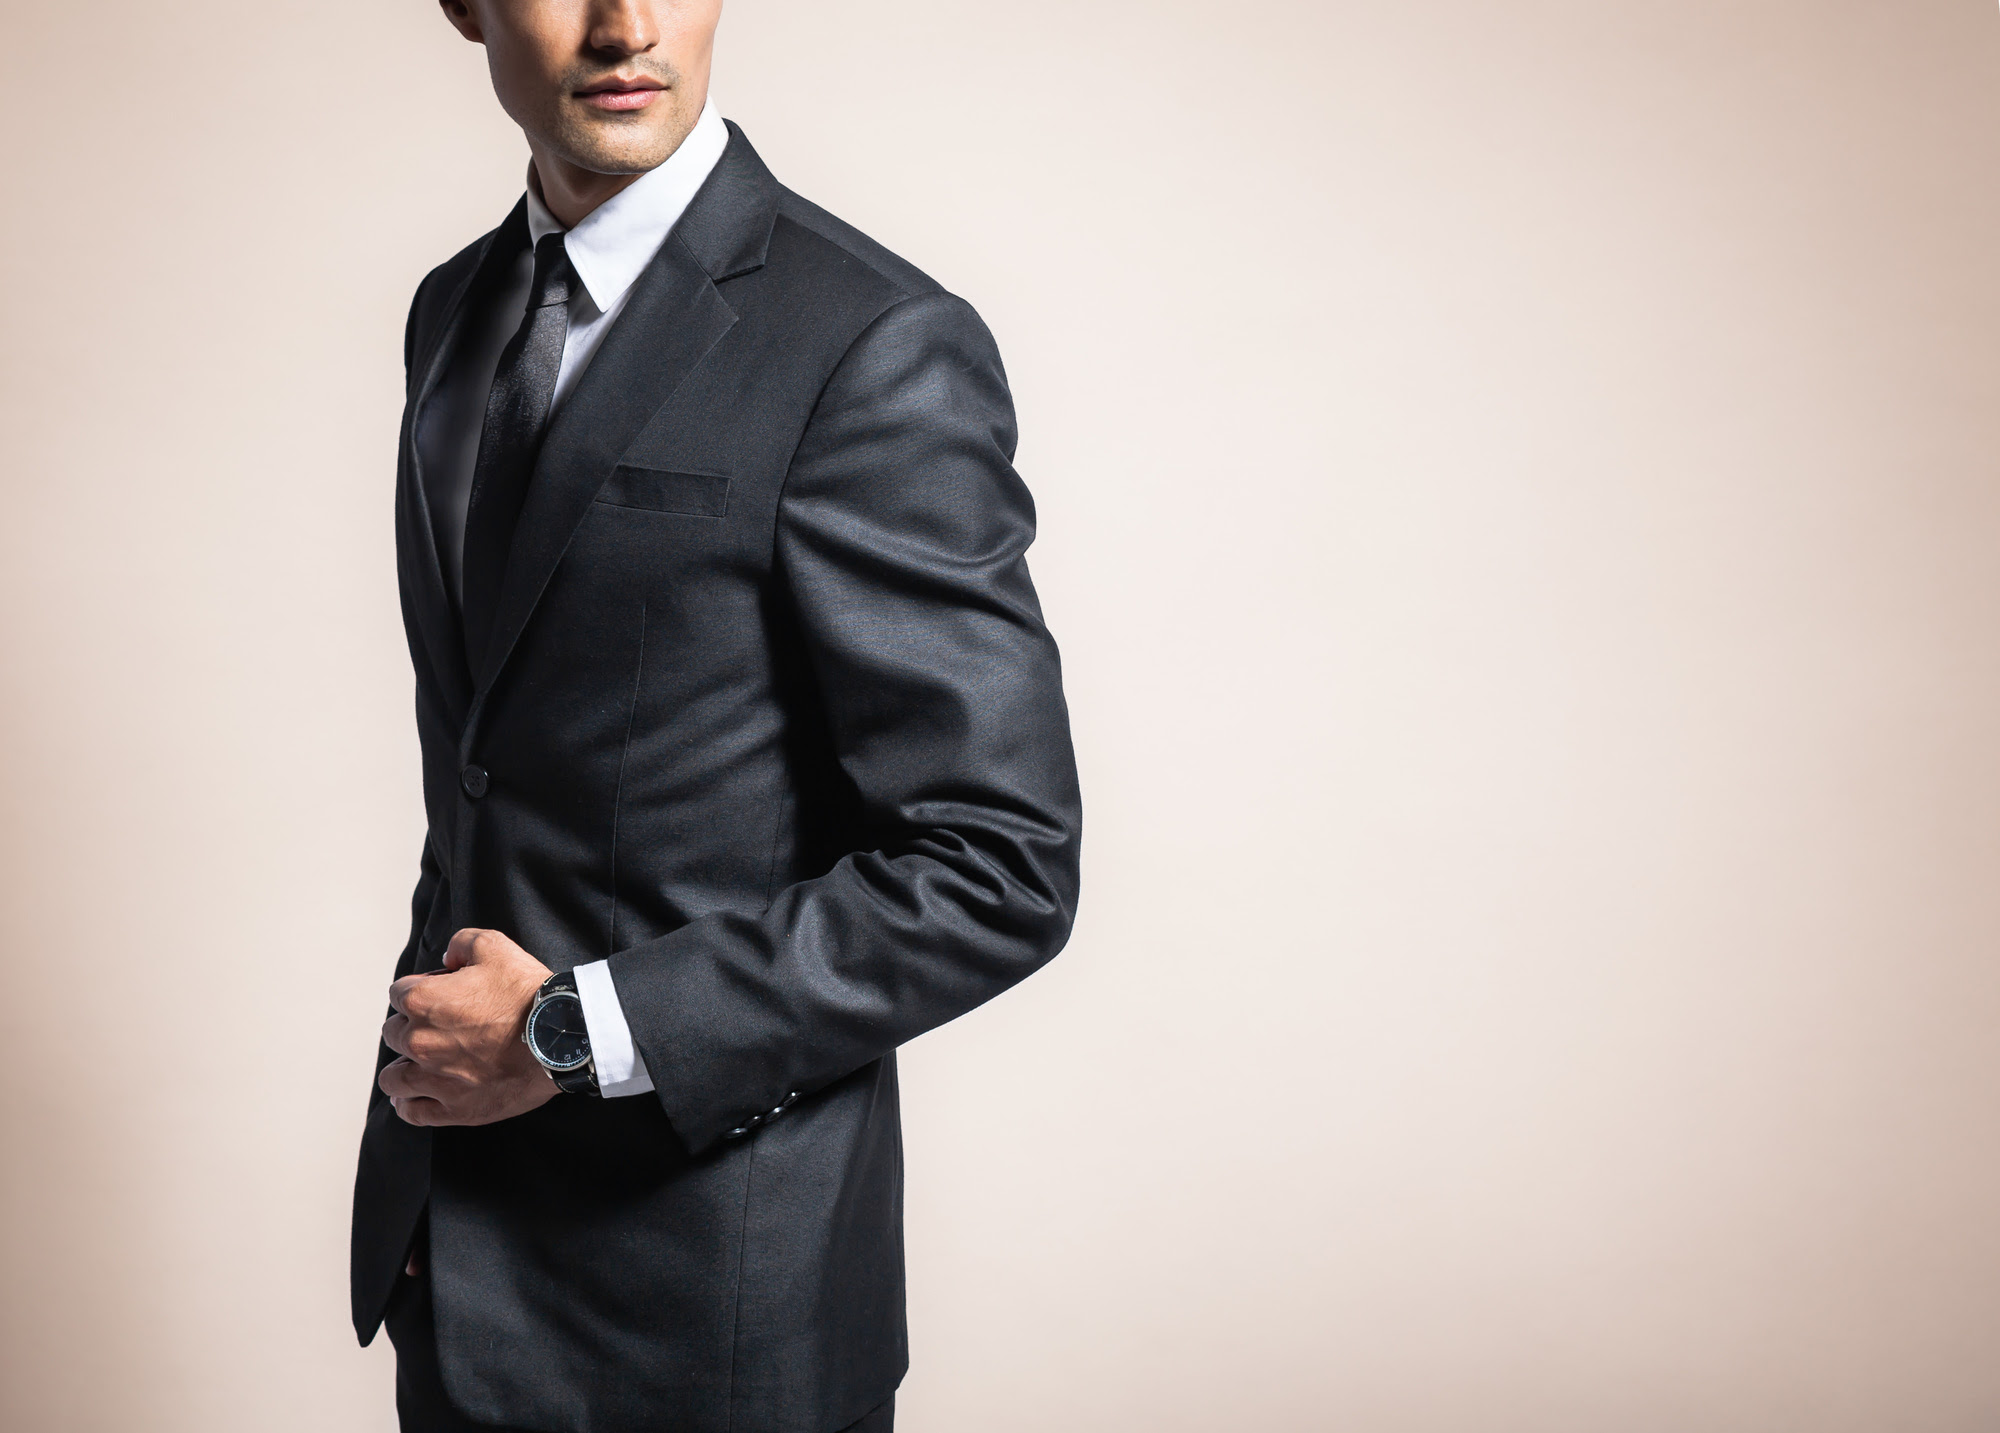 the do's and don'ts of professional business attire for